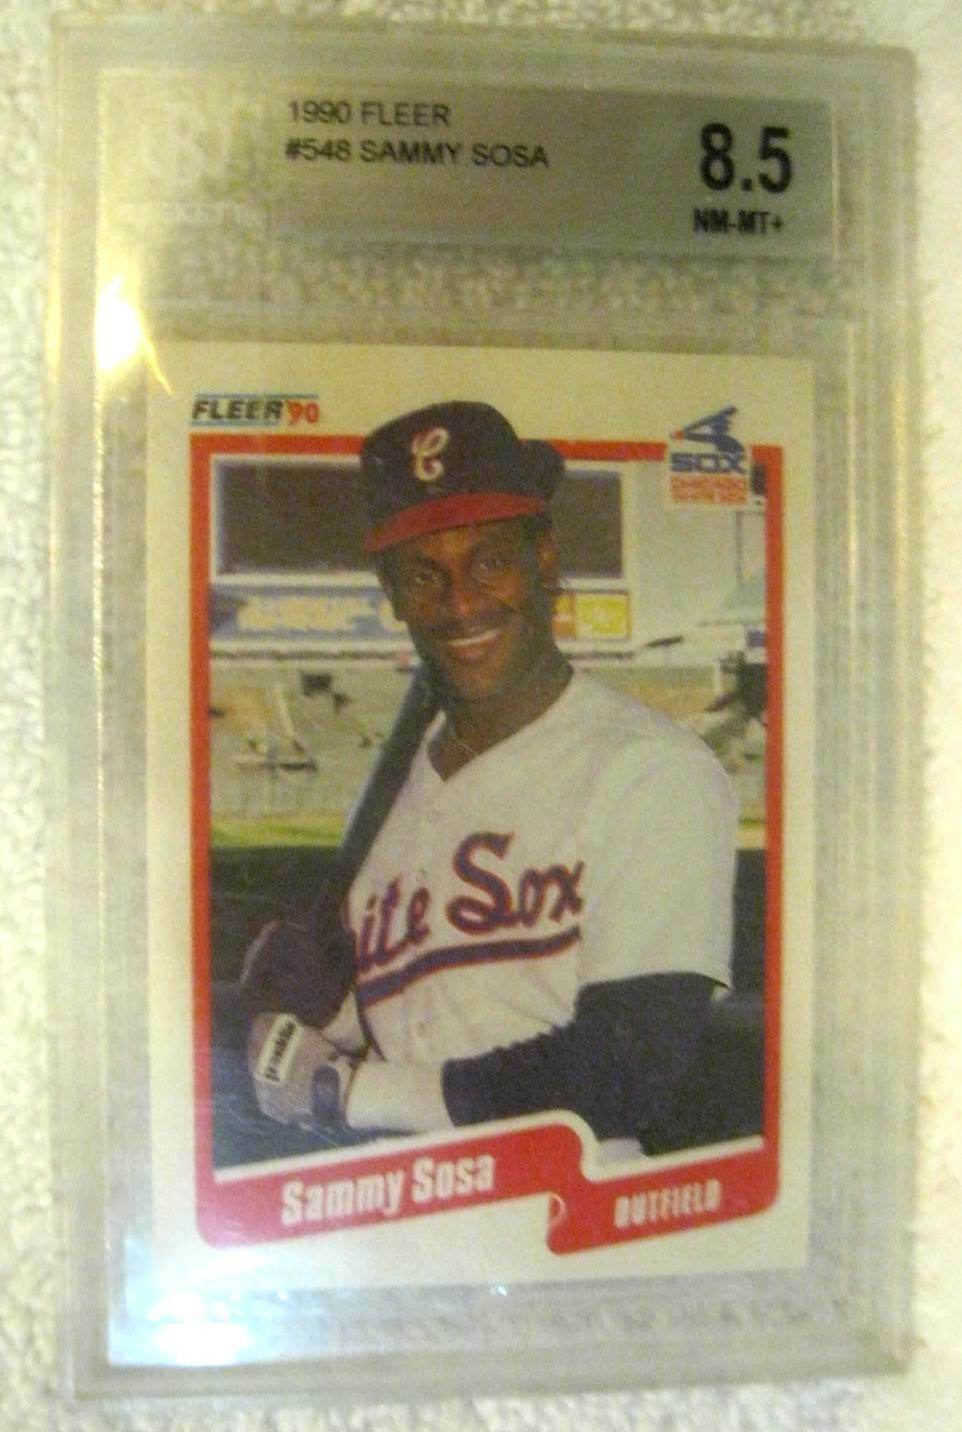 Details About Sammy Sosa Rc 1990 Fleer Baseball Card548 Graded Nm Bgs 85white Sox Of Rc